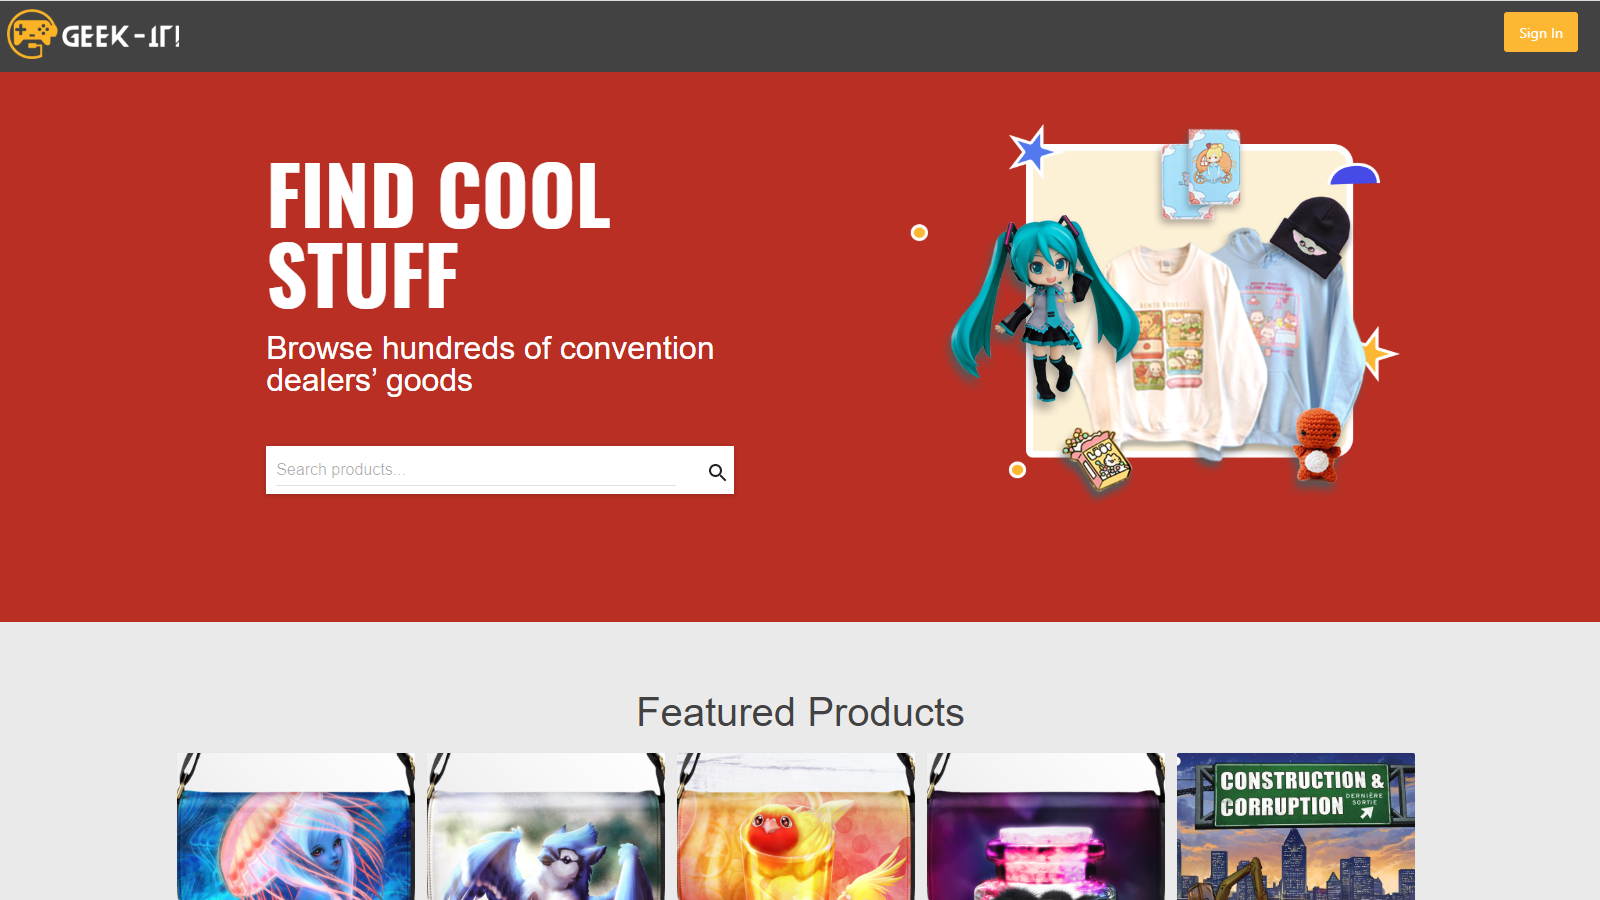 Showcase your products on Geek-it! Marketplace